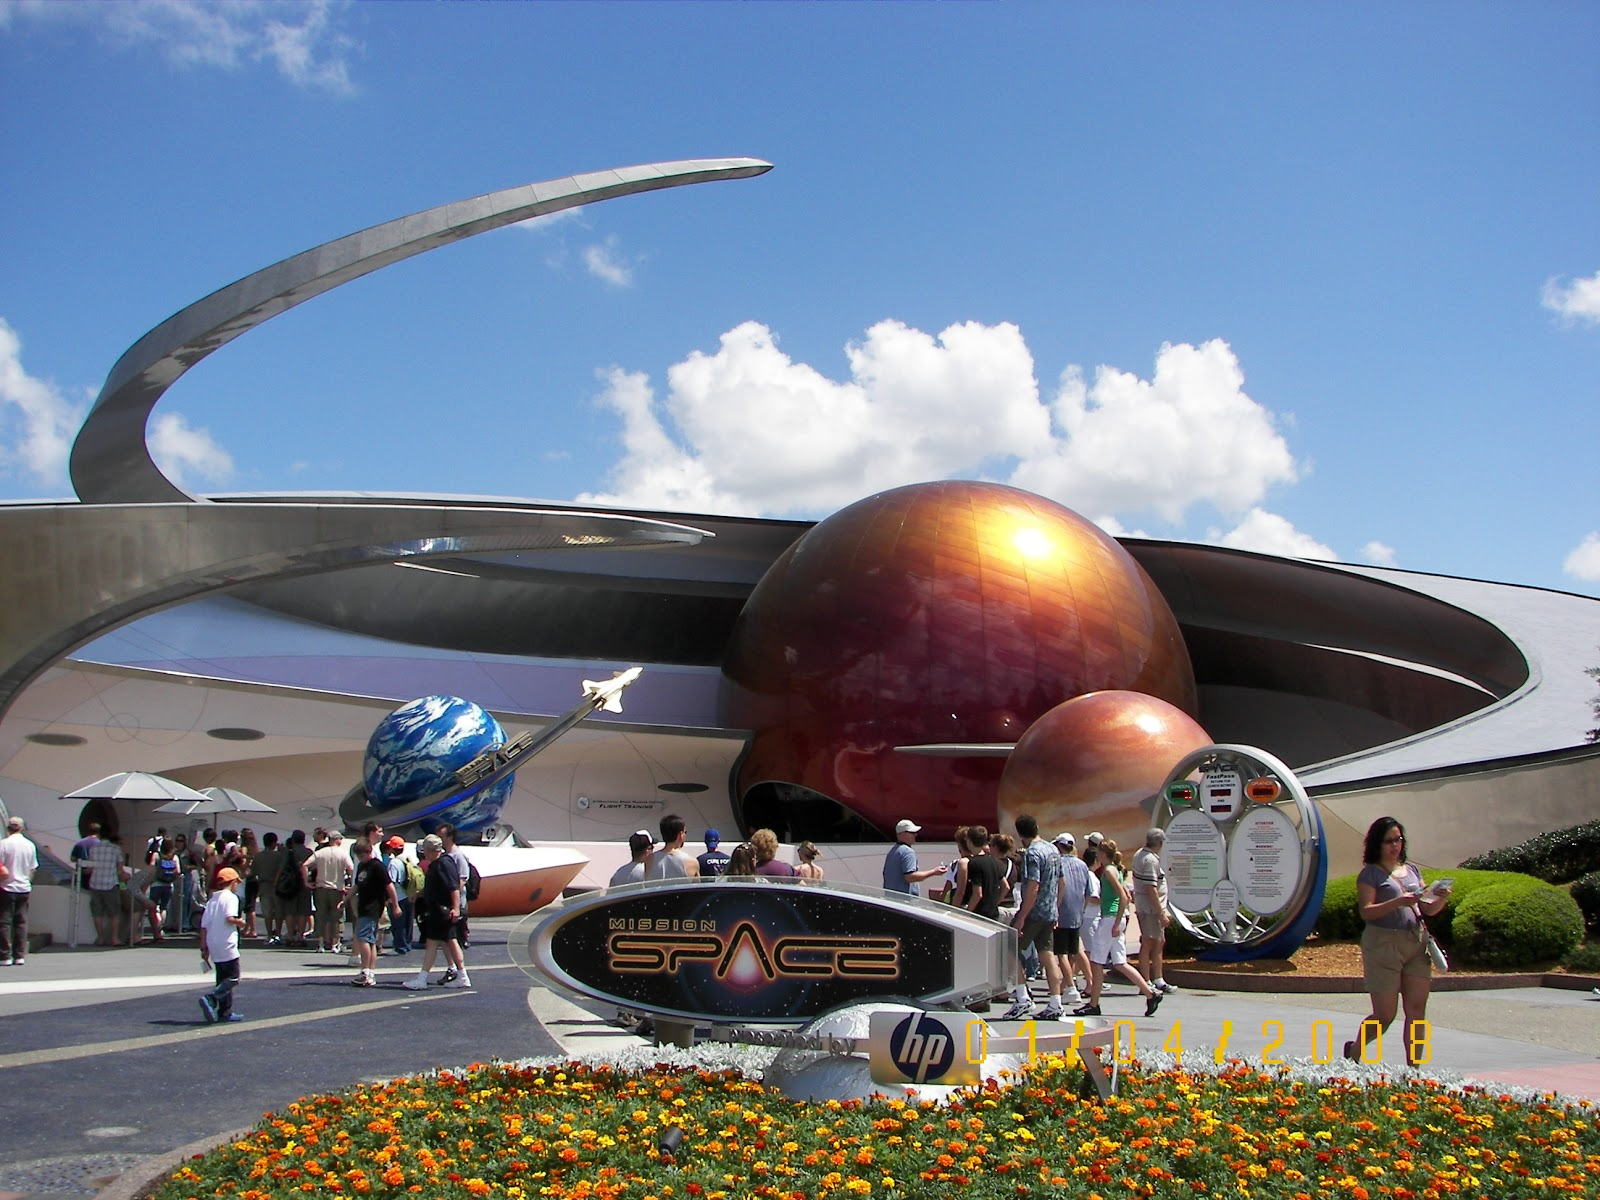 mission to mars ride epcot - photo #10